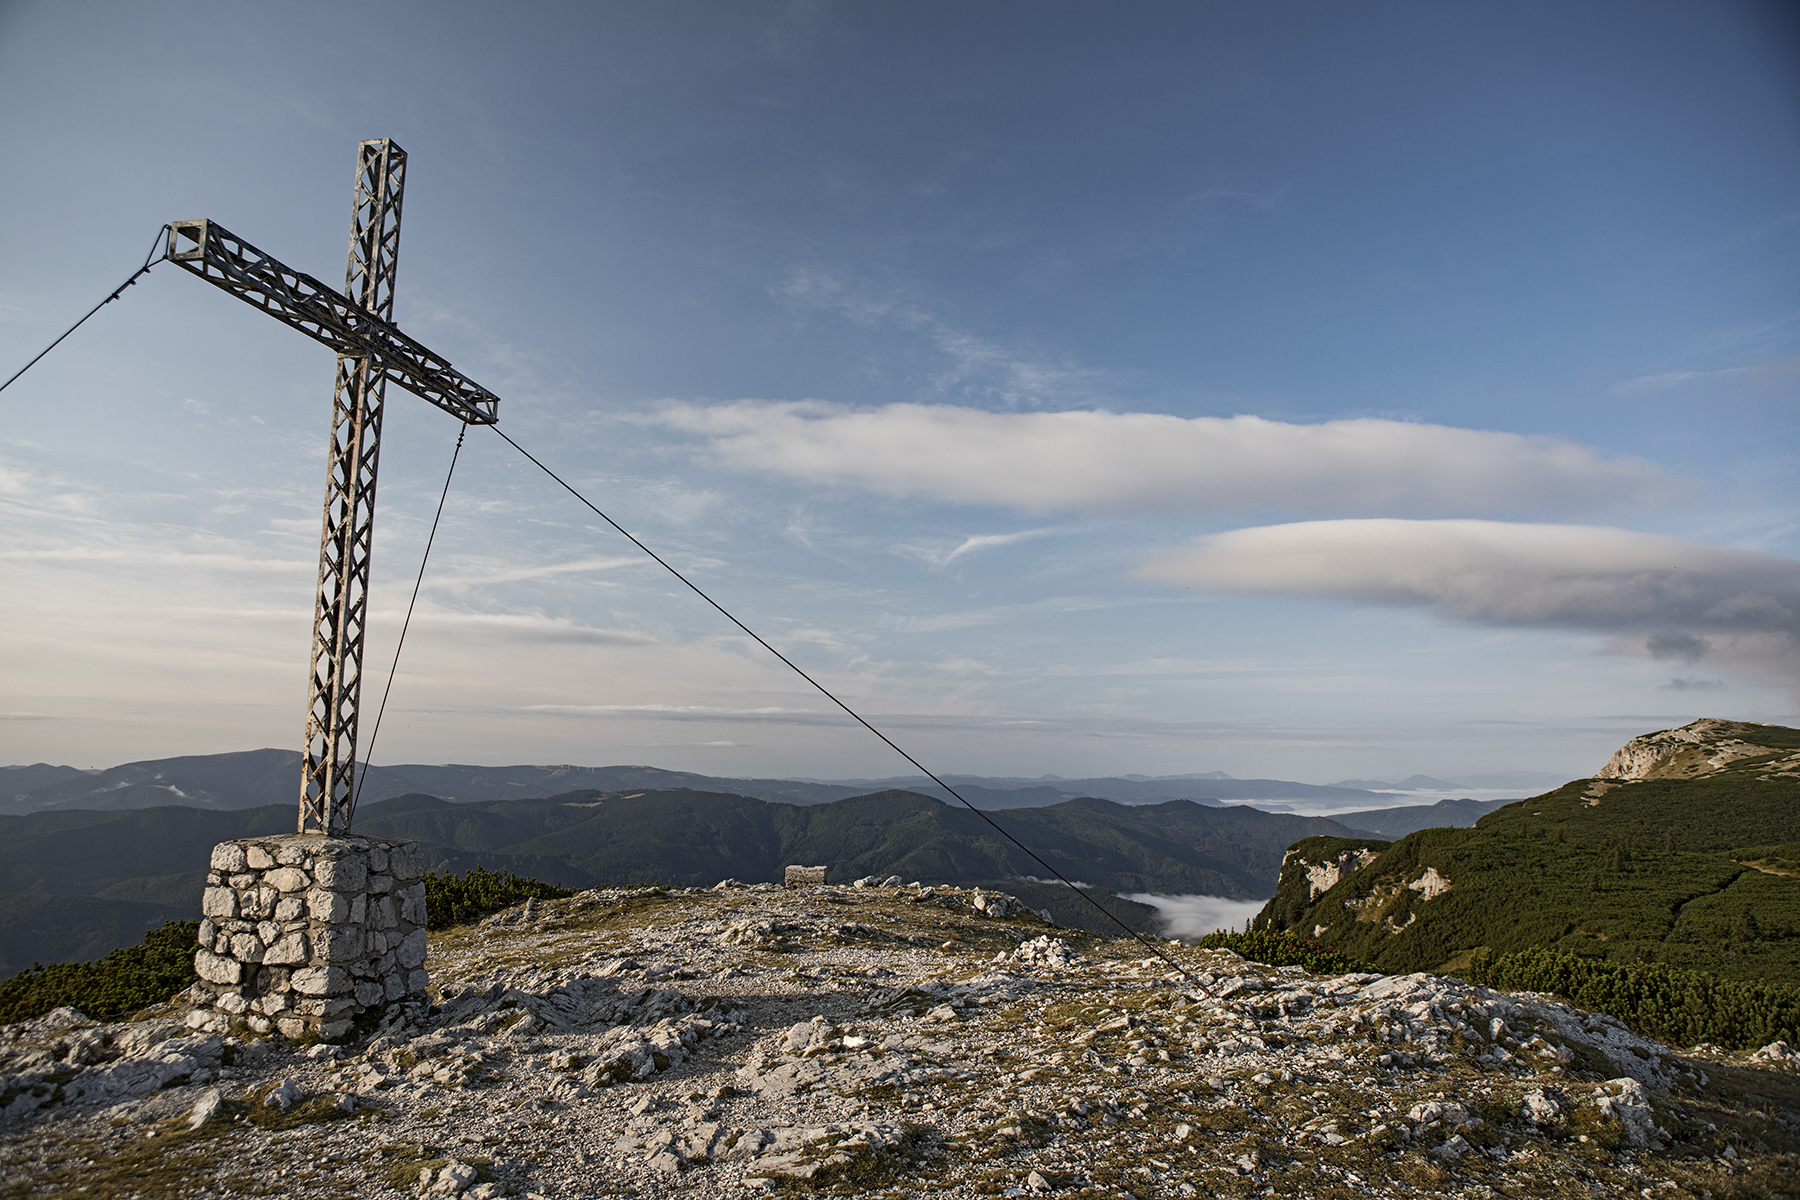 The iron cross at the summit of Jakobskogel ridge, behind Ottohaus.